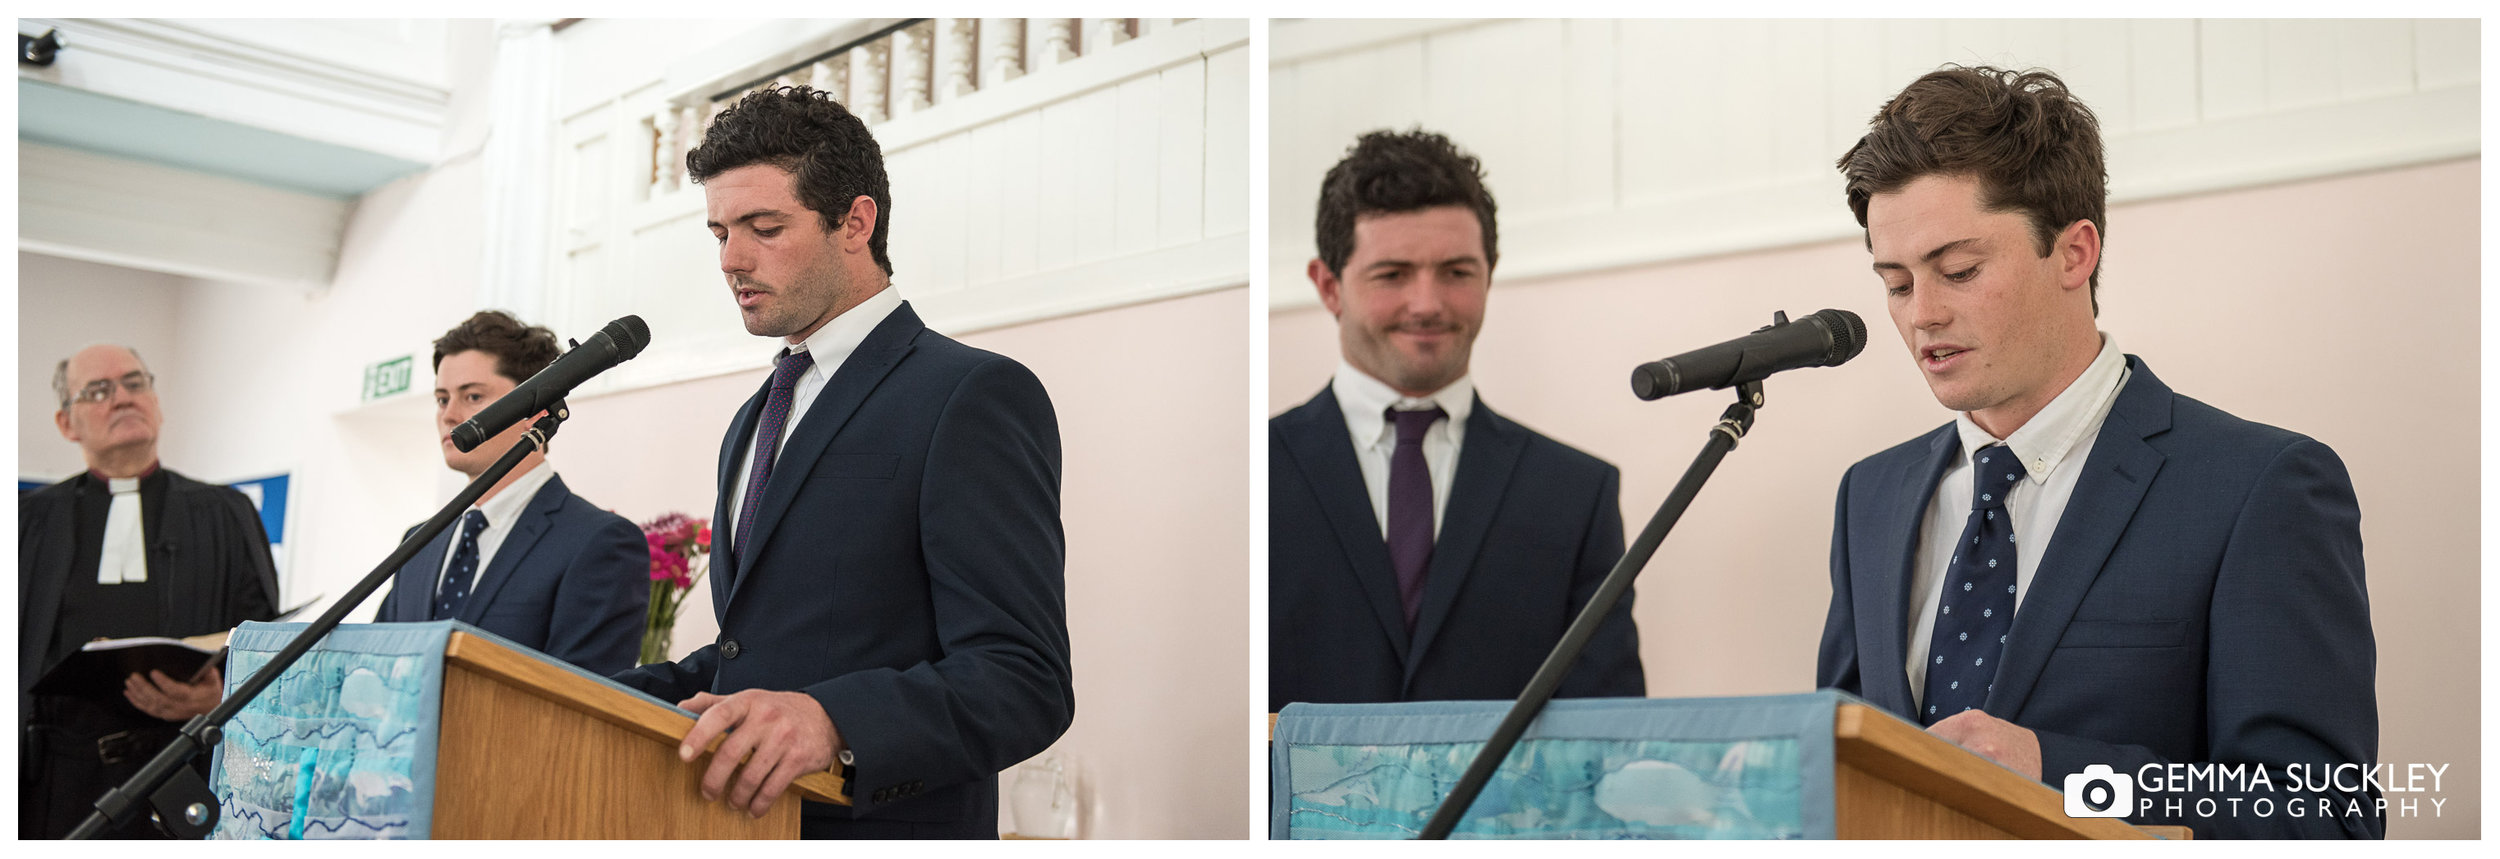 grooms brothers doing a reading during the wedding in east Yorkshire